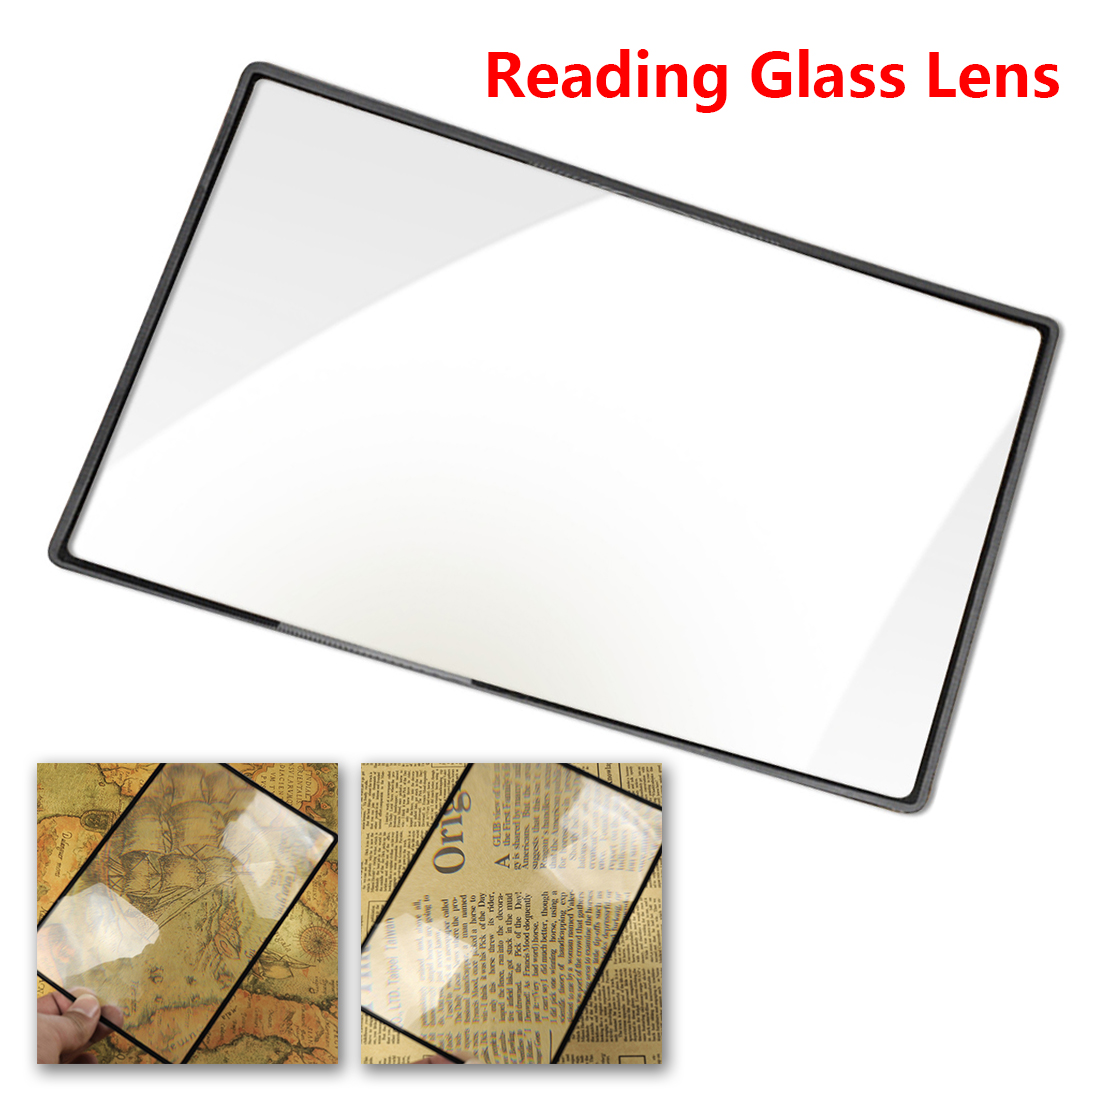 Reading Glass Lens 180X120mm Convinient A5 Flat PVC Magnifier Sheet X3 Book Page Magnification Magnifying 3x large reading magnifier big a4 full page sheet magnifying glass book reading lens page reading glass lens magnification